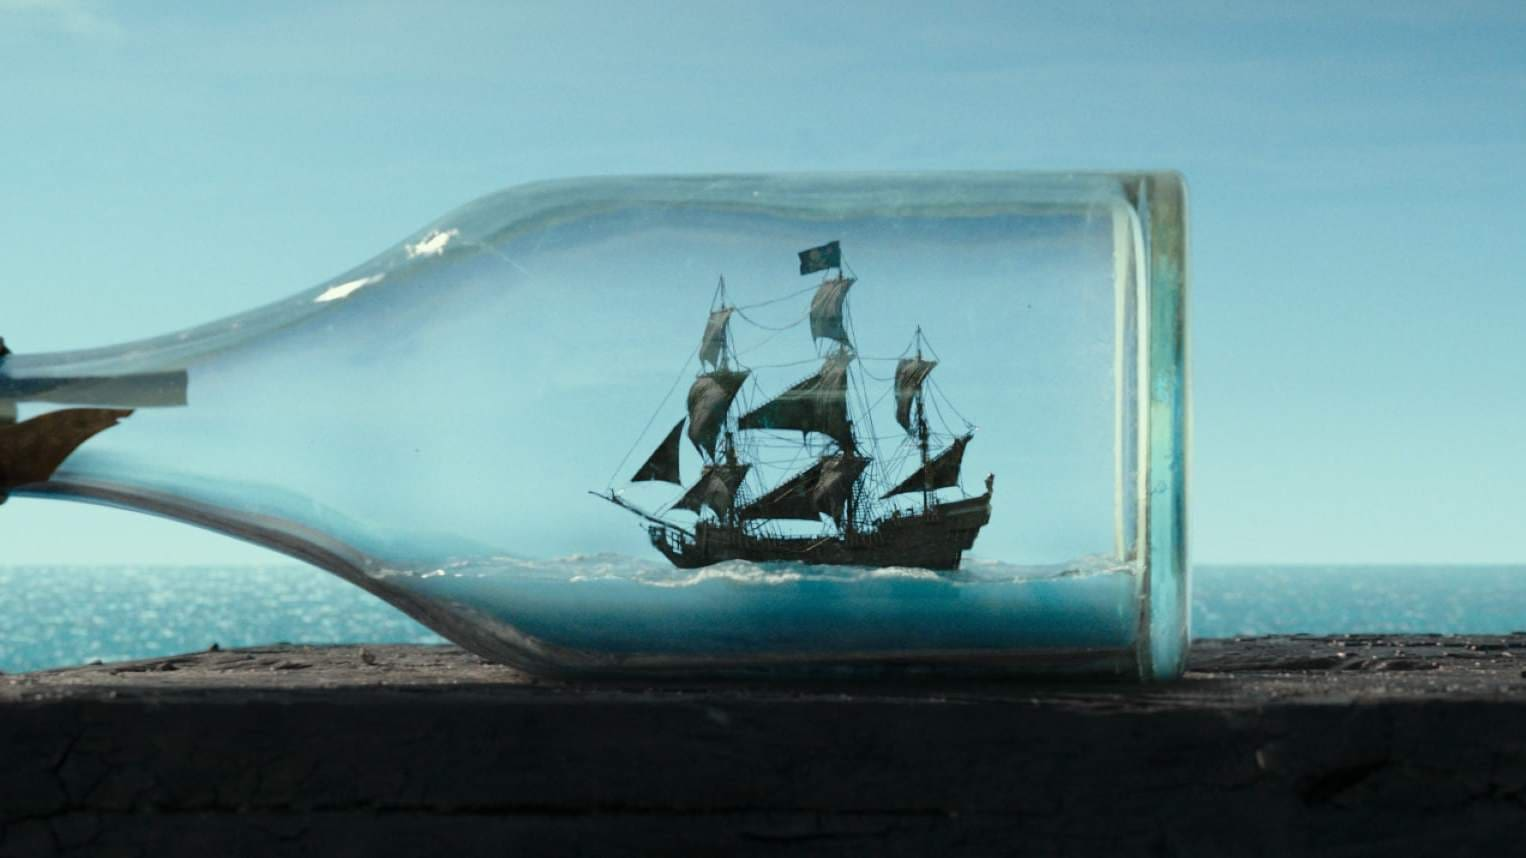 Image of a ship passing behind a glass bottle giving the illusion of a ship in a bottle in the movie Pirates of the Caribbean: Dead Men Tell No Tales